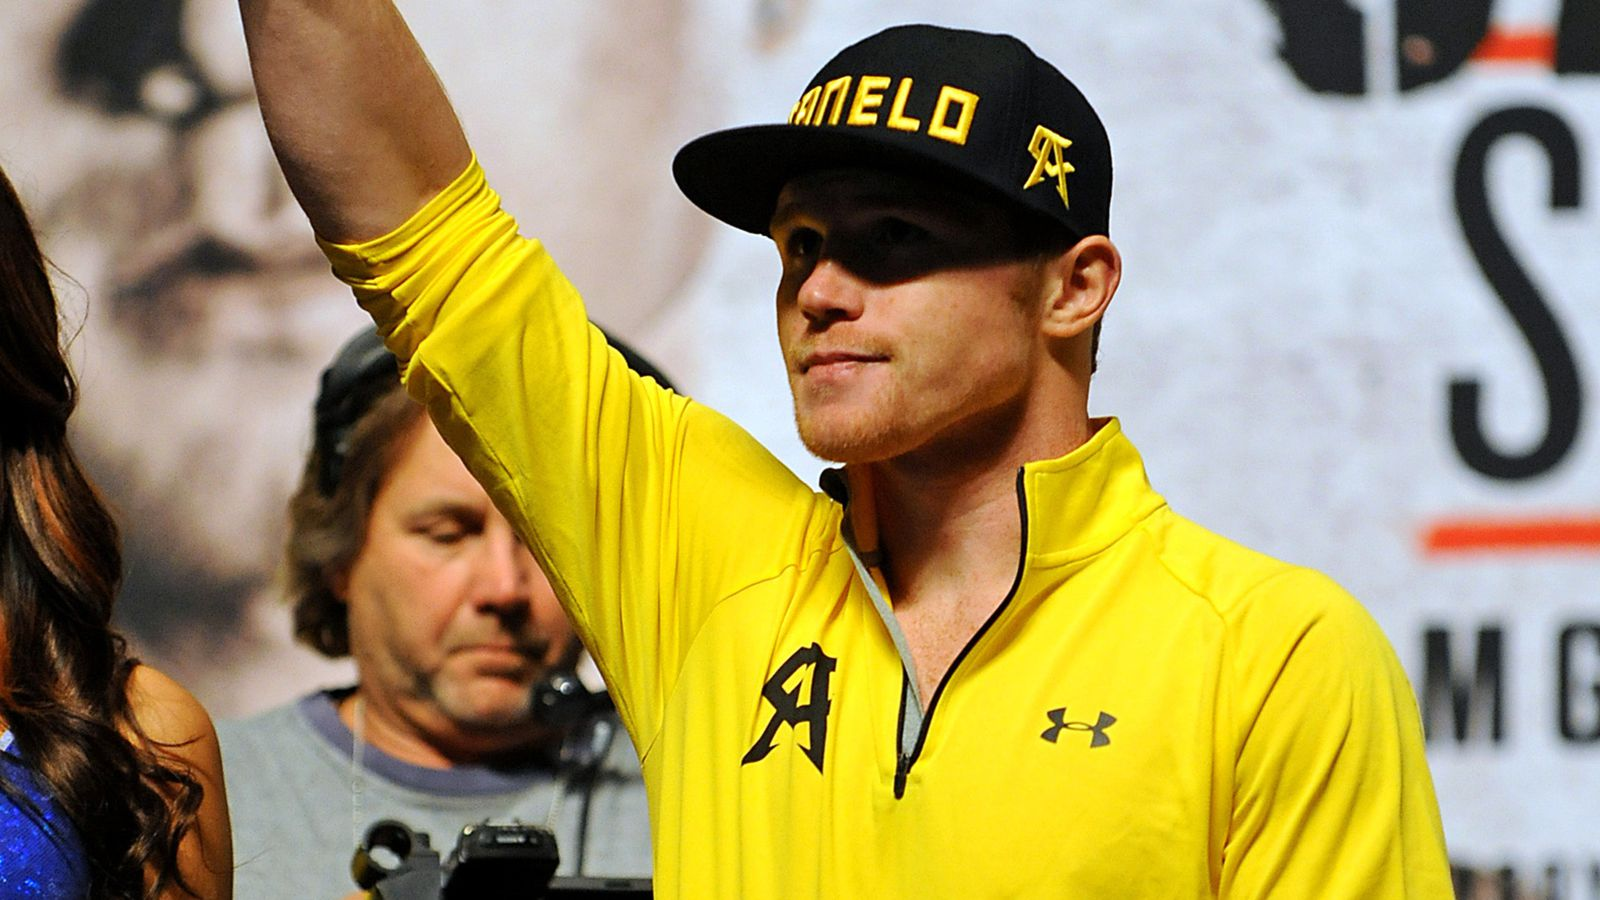 Canelo Alvarez vs Erislandy Lara looking probable for July ...